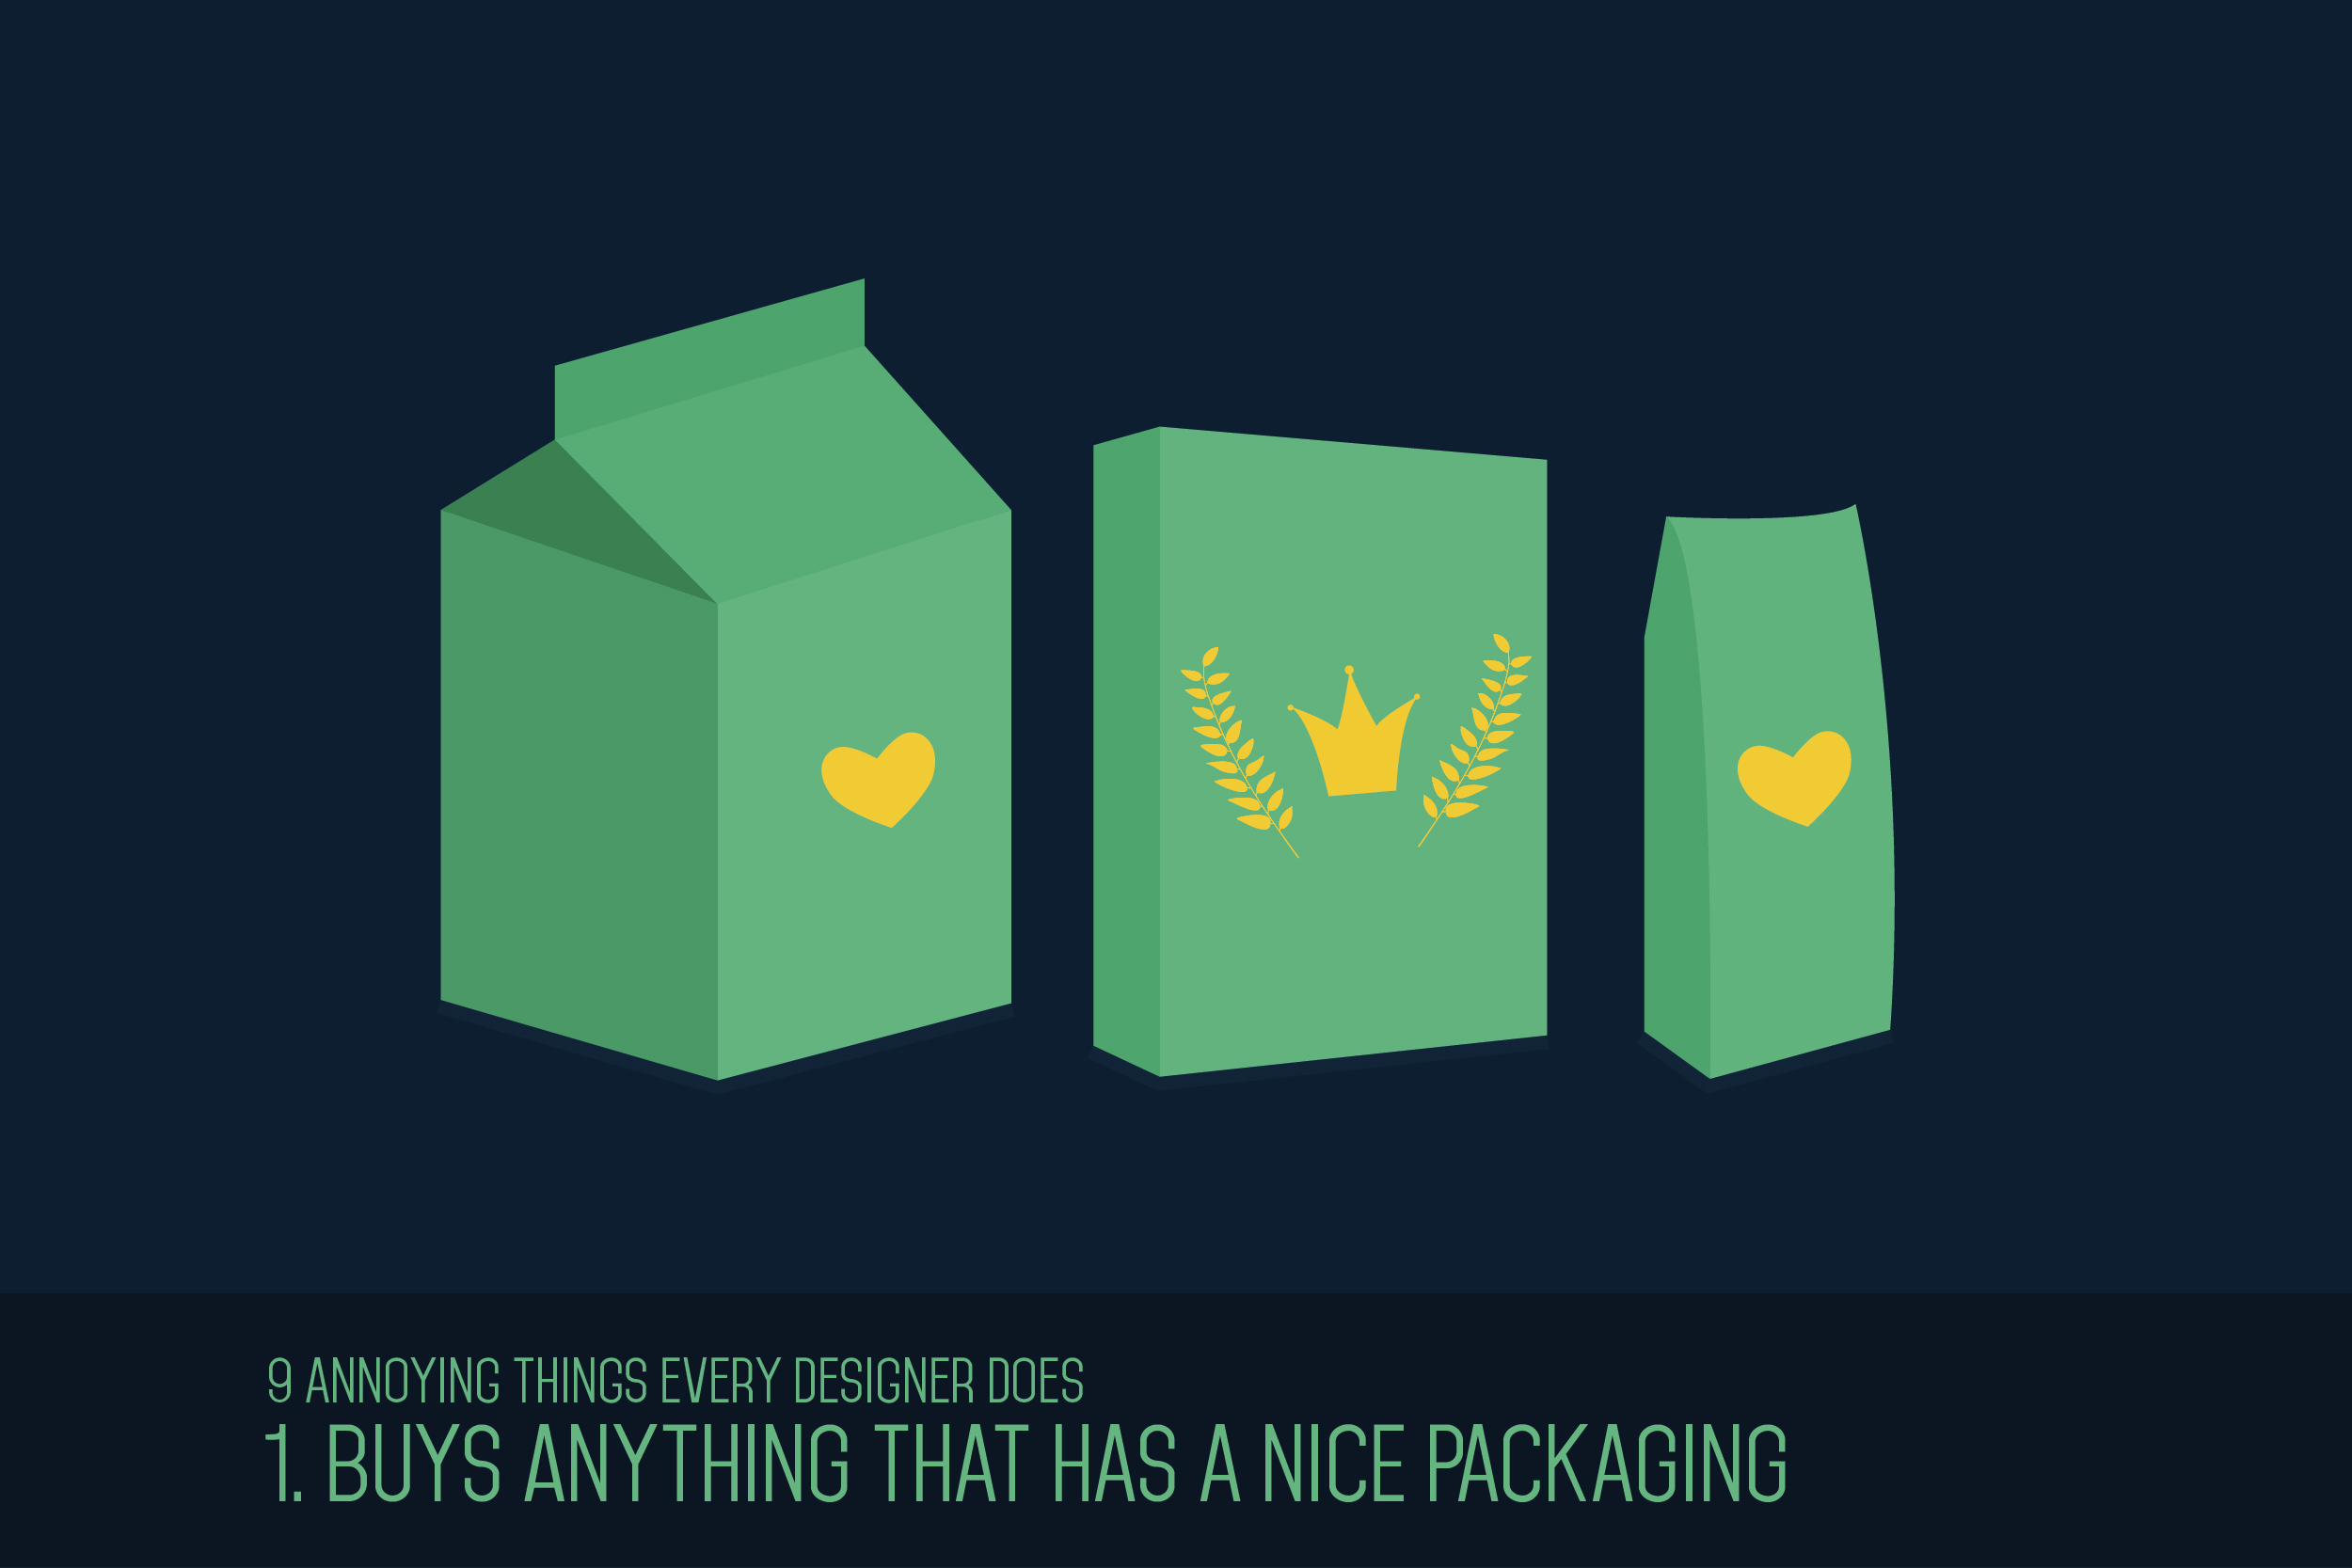 9-annoying-things-every-designer-does